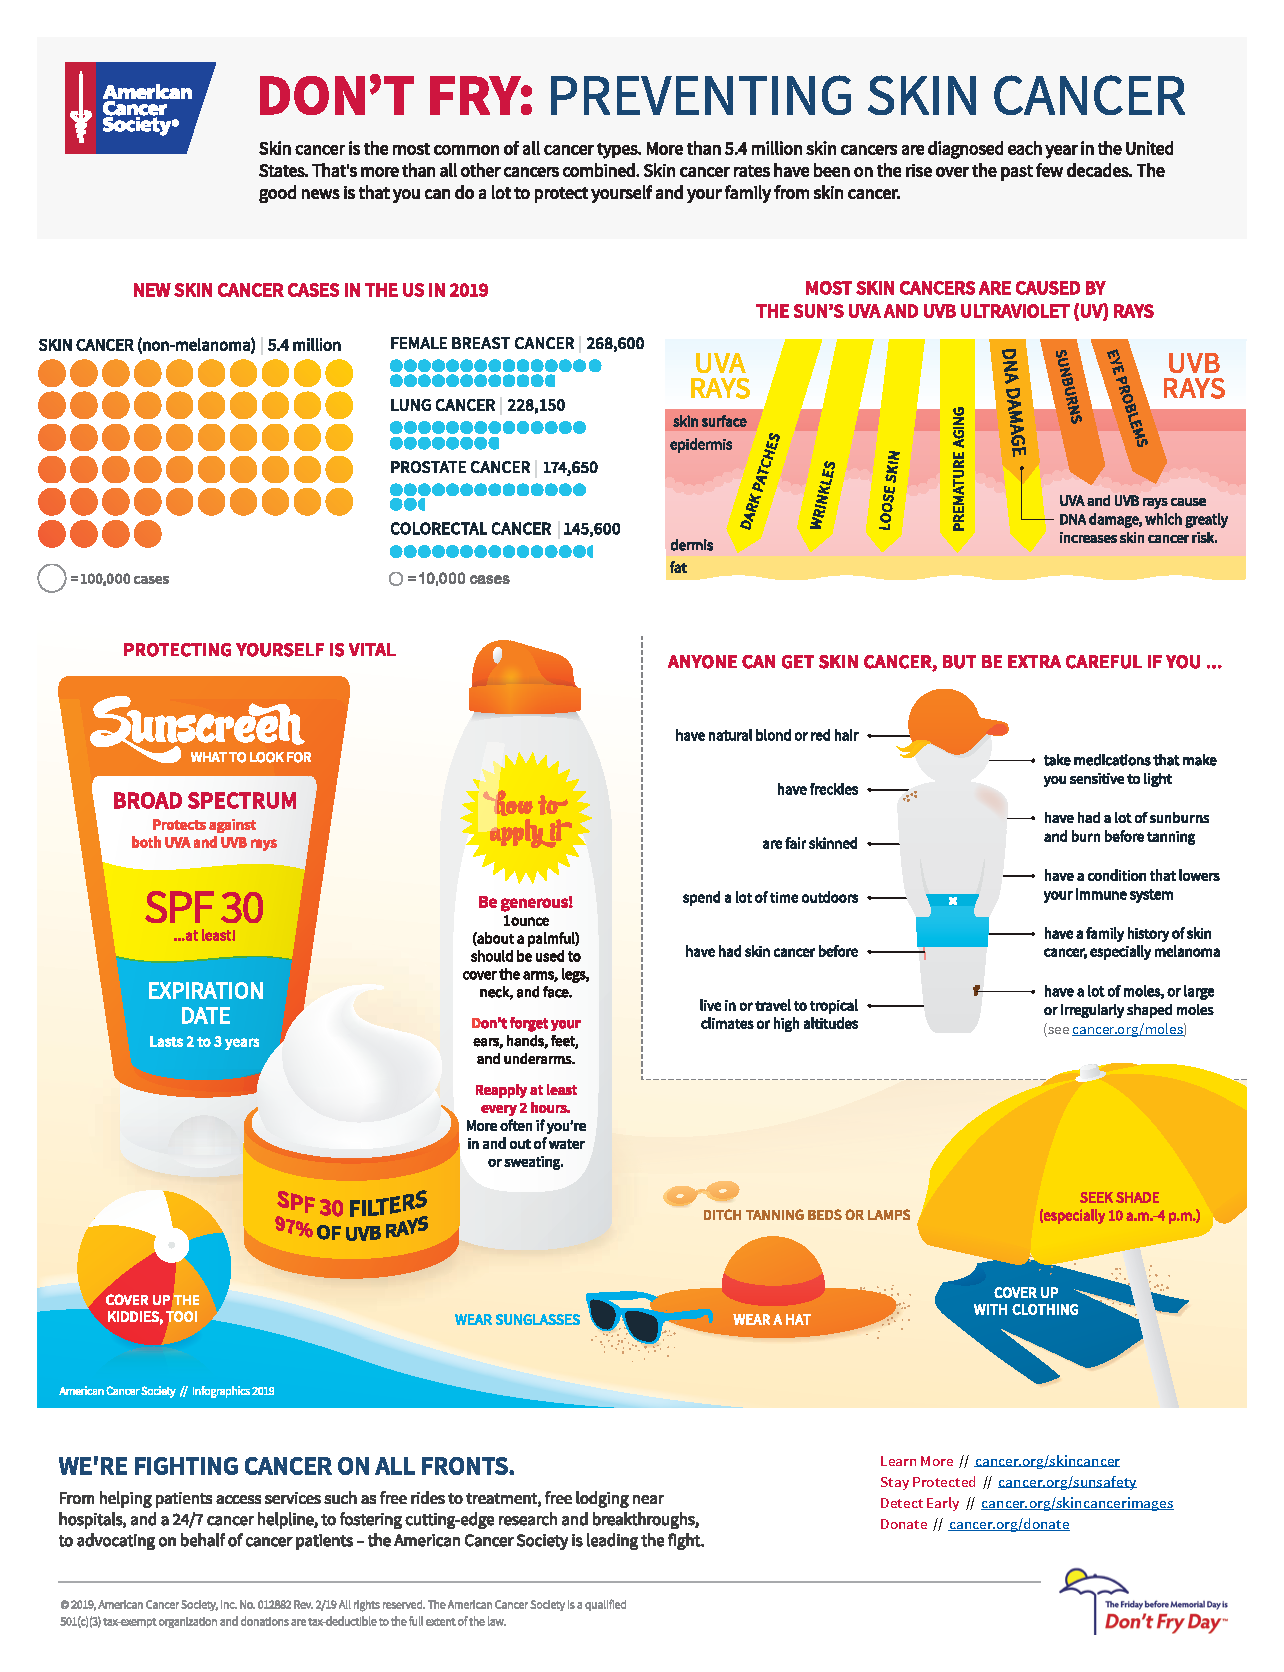 Don't Fry: Preventing Skin Cancer